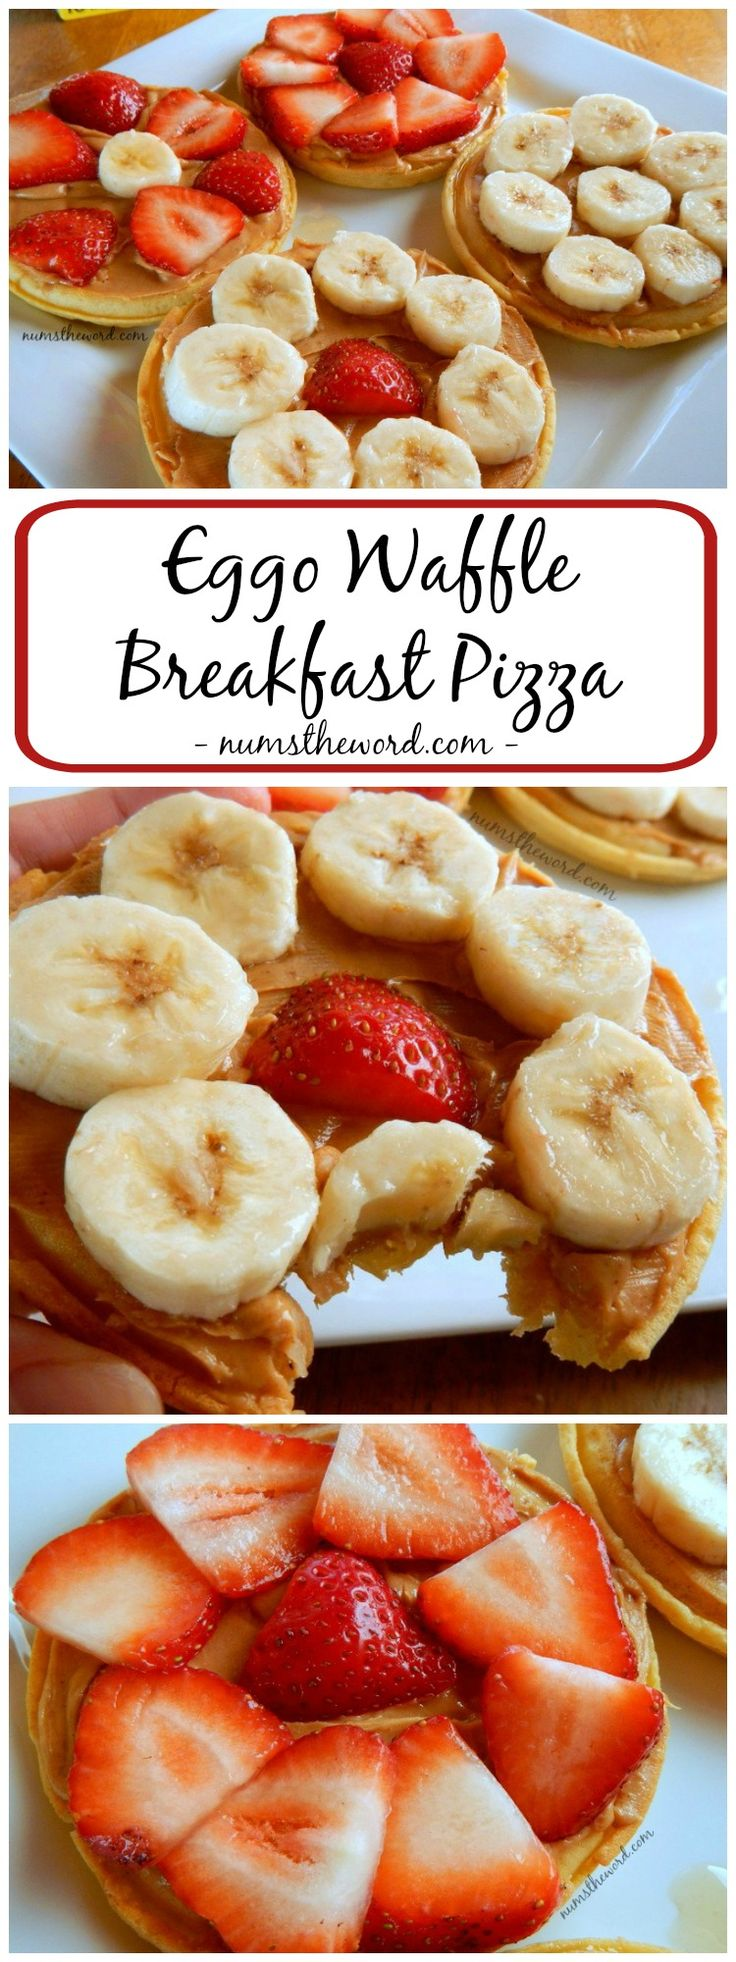 Need an easy, healthy, on the go breakfast?  This Eggo Waffle Breakfast Pizza takes 5 minutes or less to whip up, has 4 ingredients & is a healthy, easy, car friendly breakfast! #FueledForSchool #ad